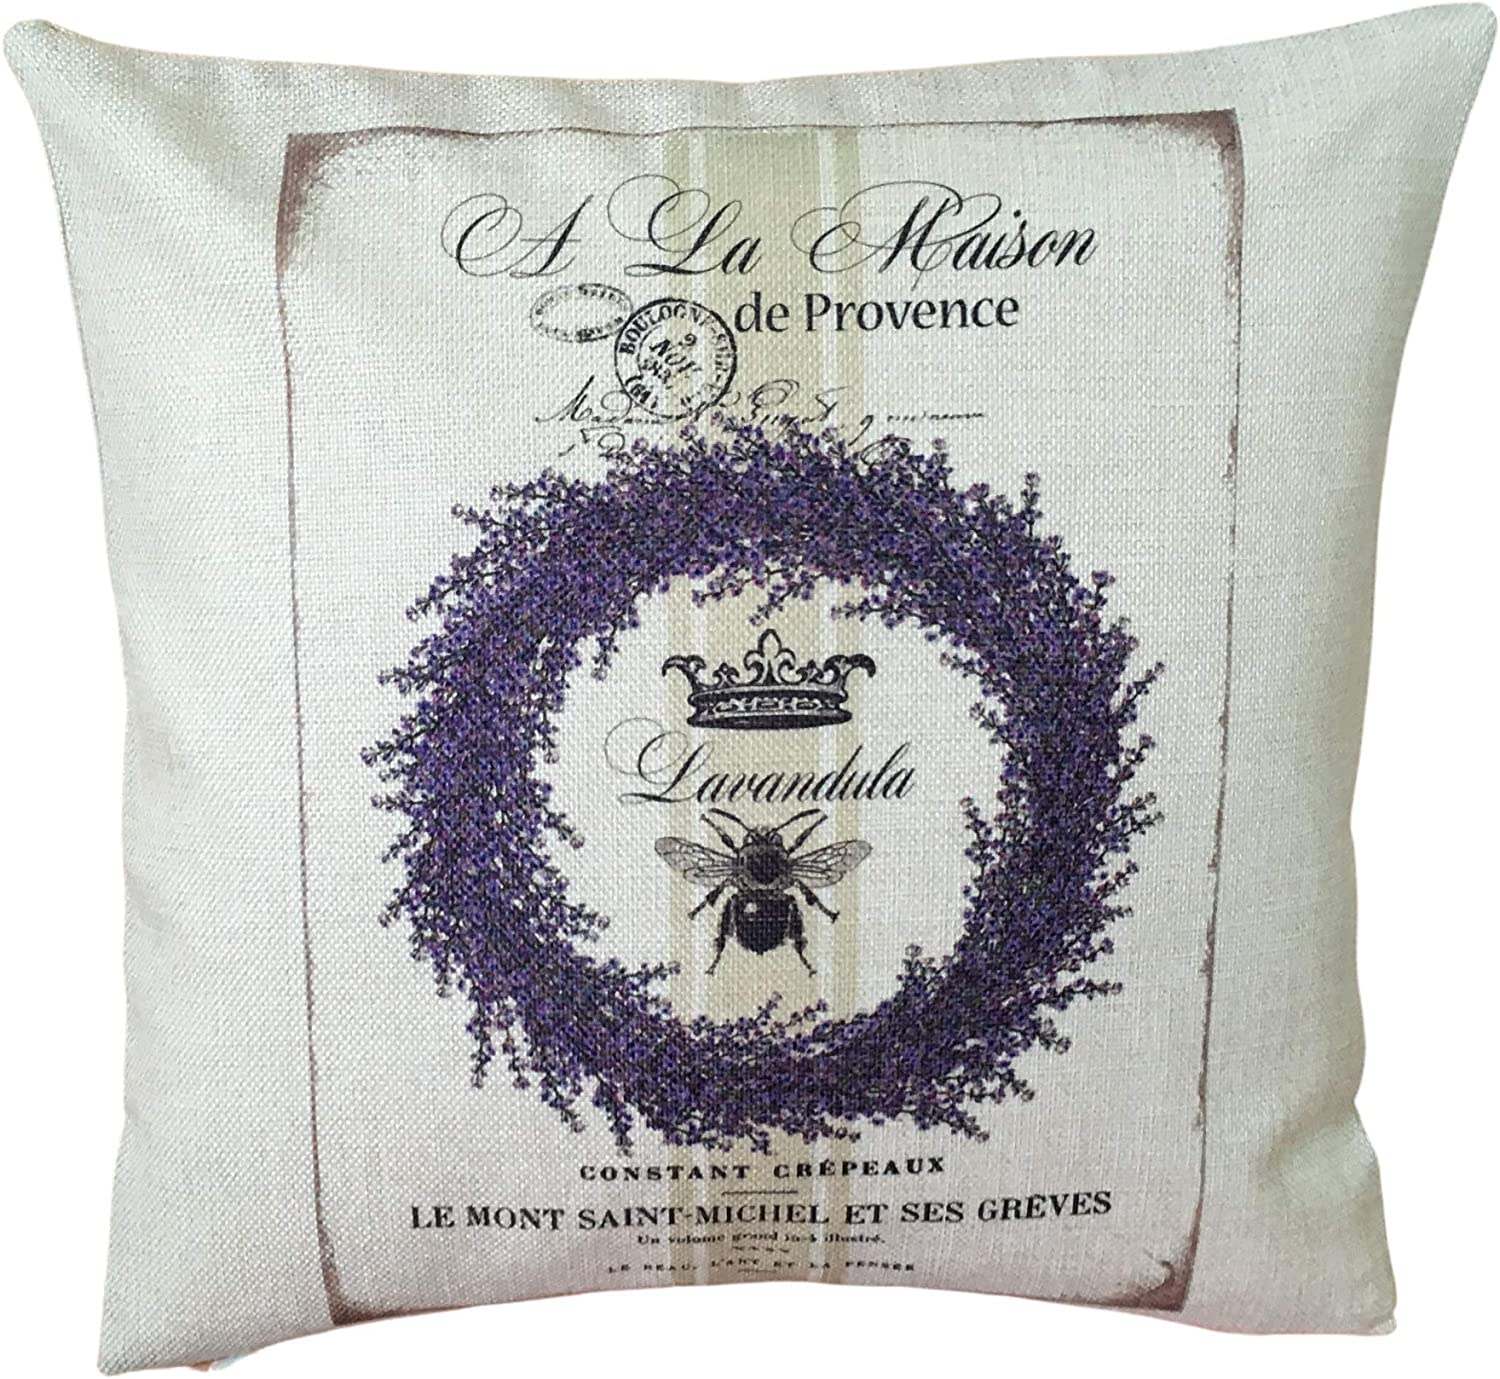 43LenaJon Personalized Pillowcase Provence Lavender Pillow Cover Rustic French Country Botanical Present Home Decor